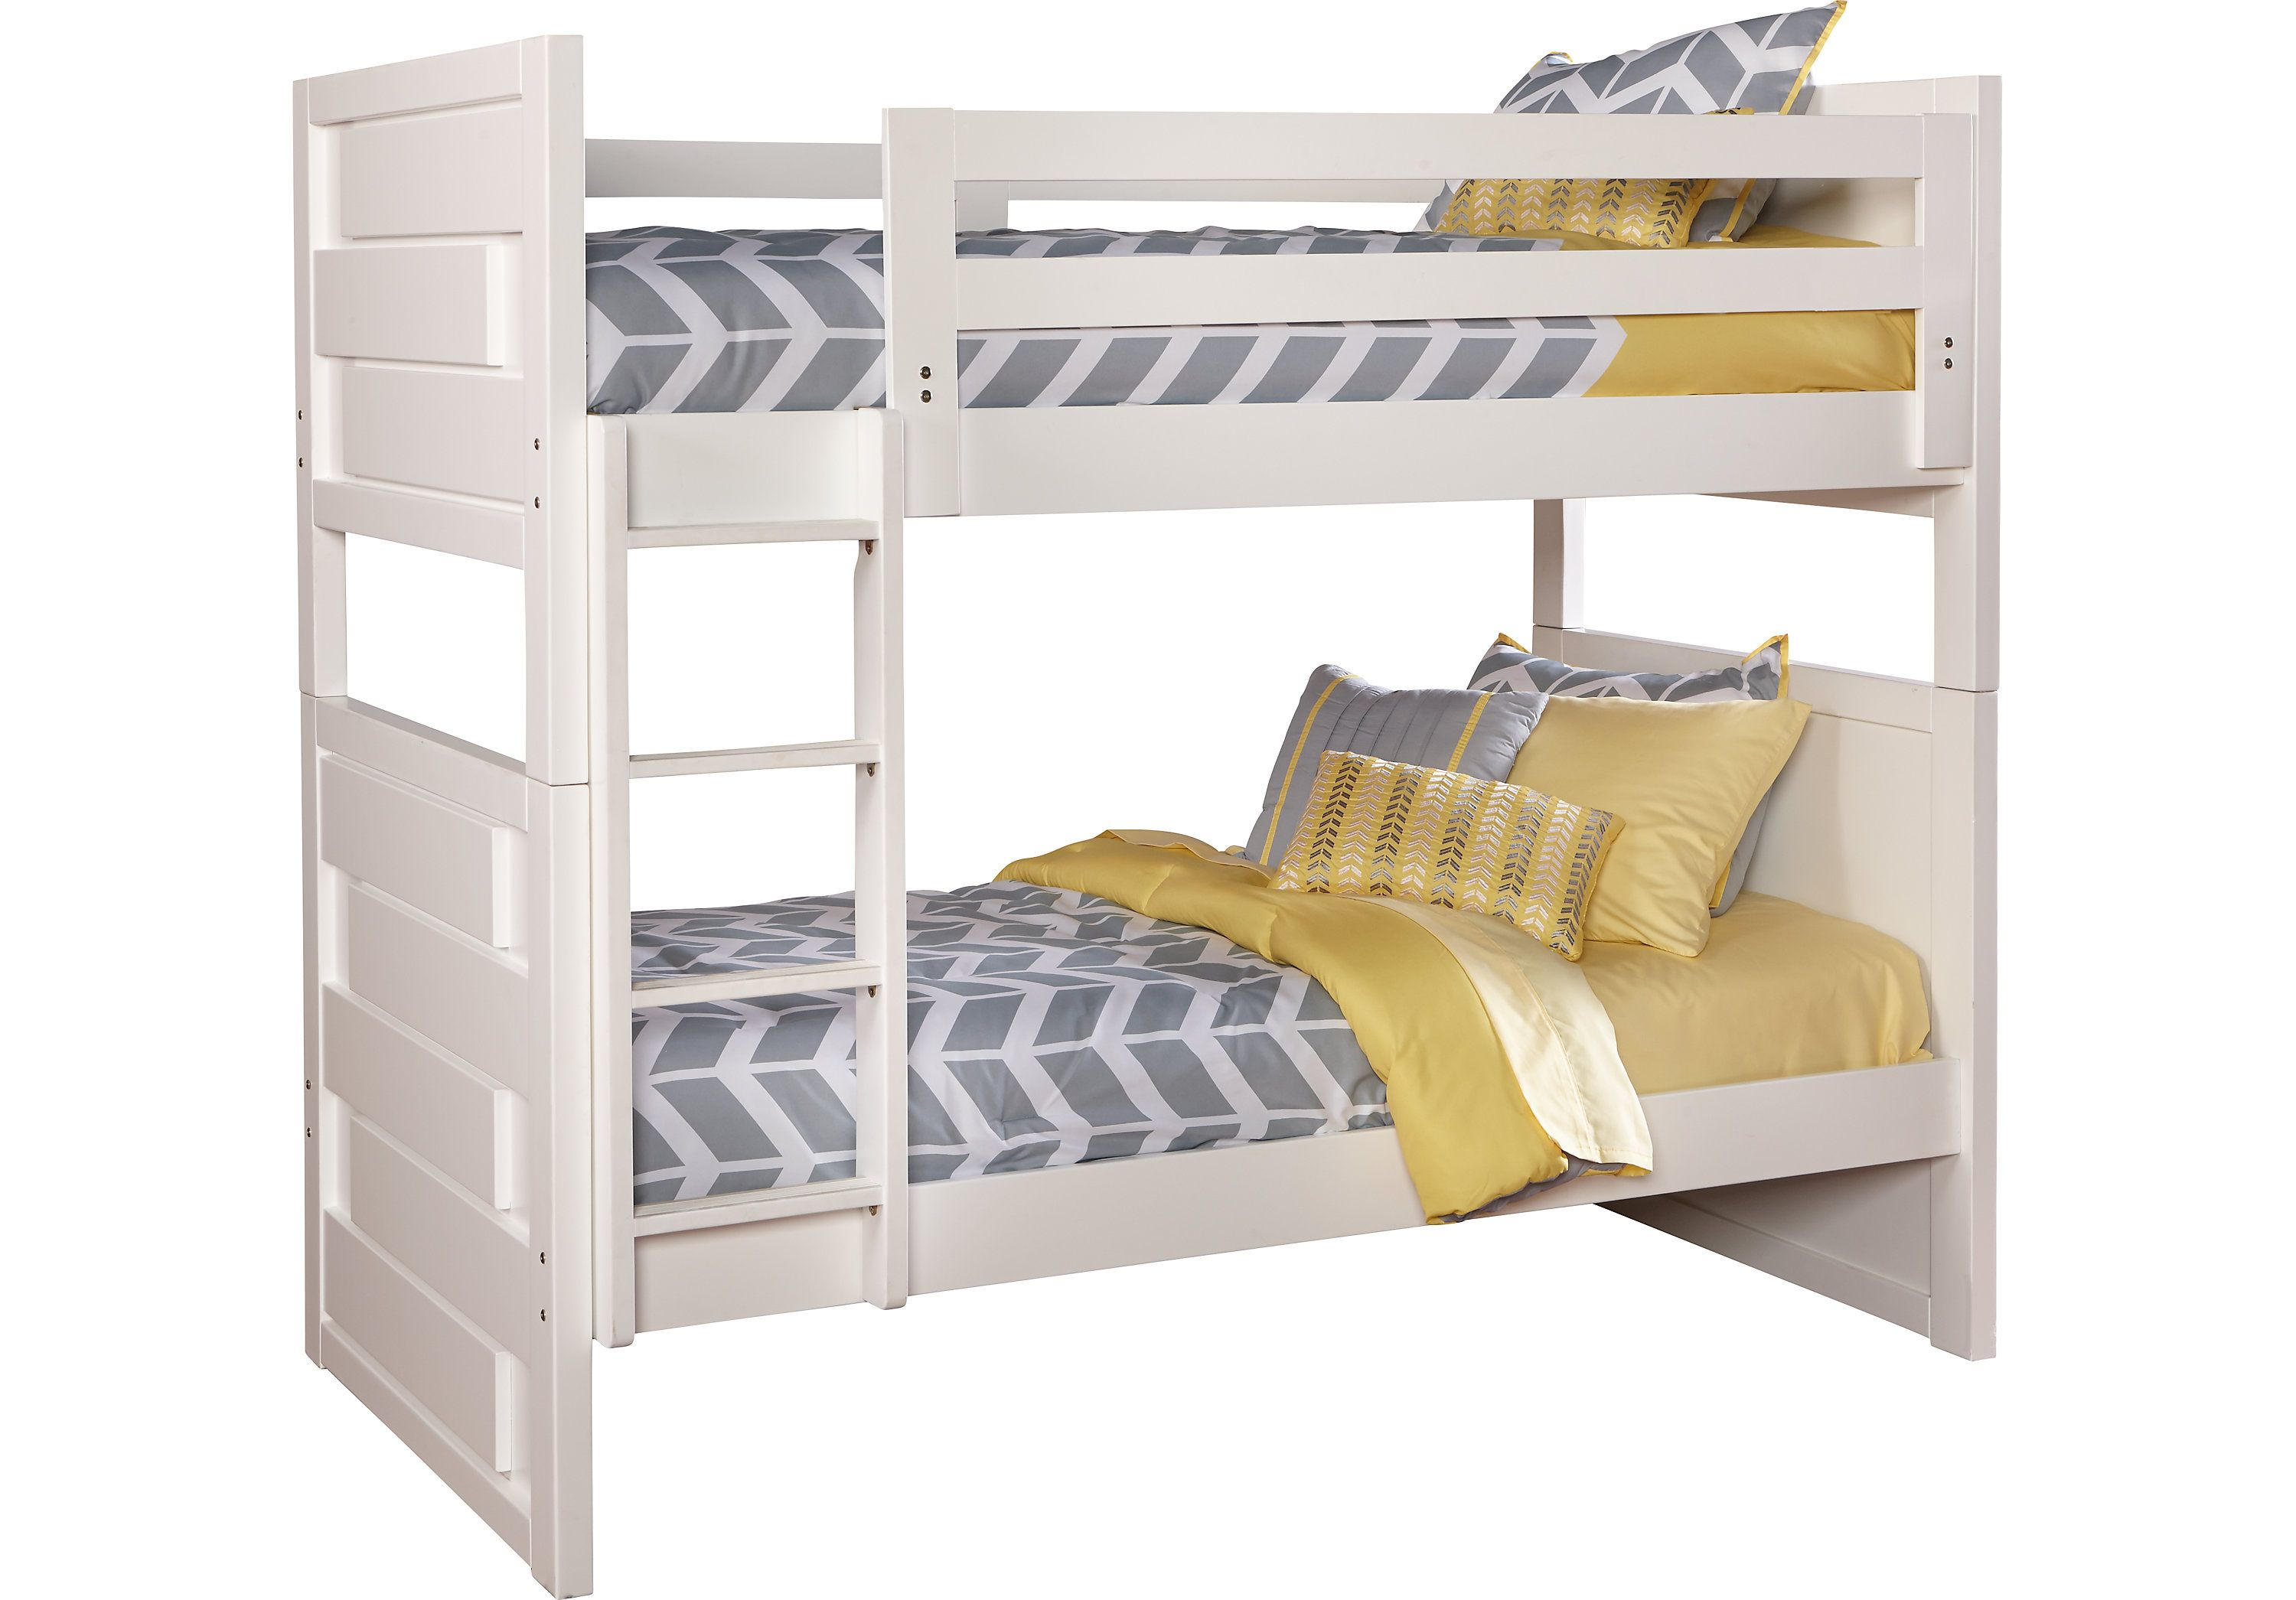 3 bedroom loft  picture of Quake White TwinTwin Bunk Bed from Beds Furniture